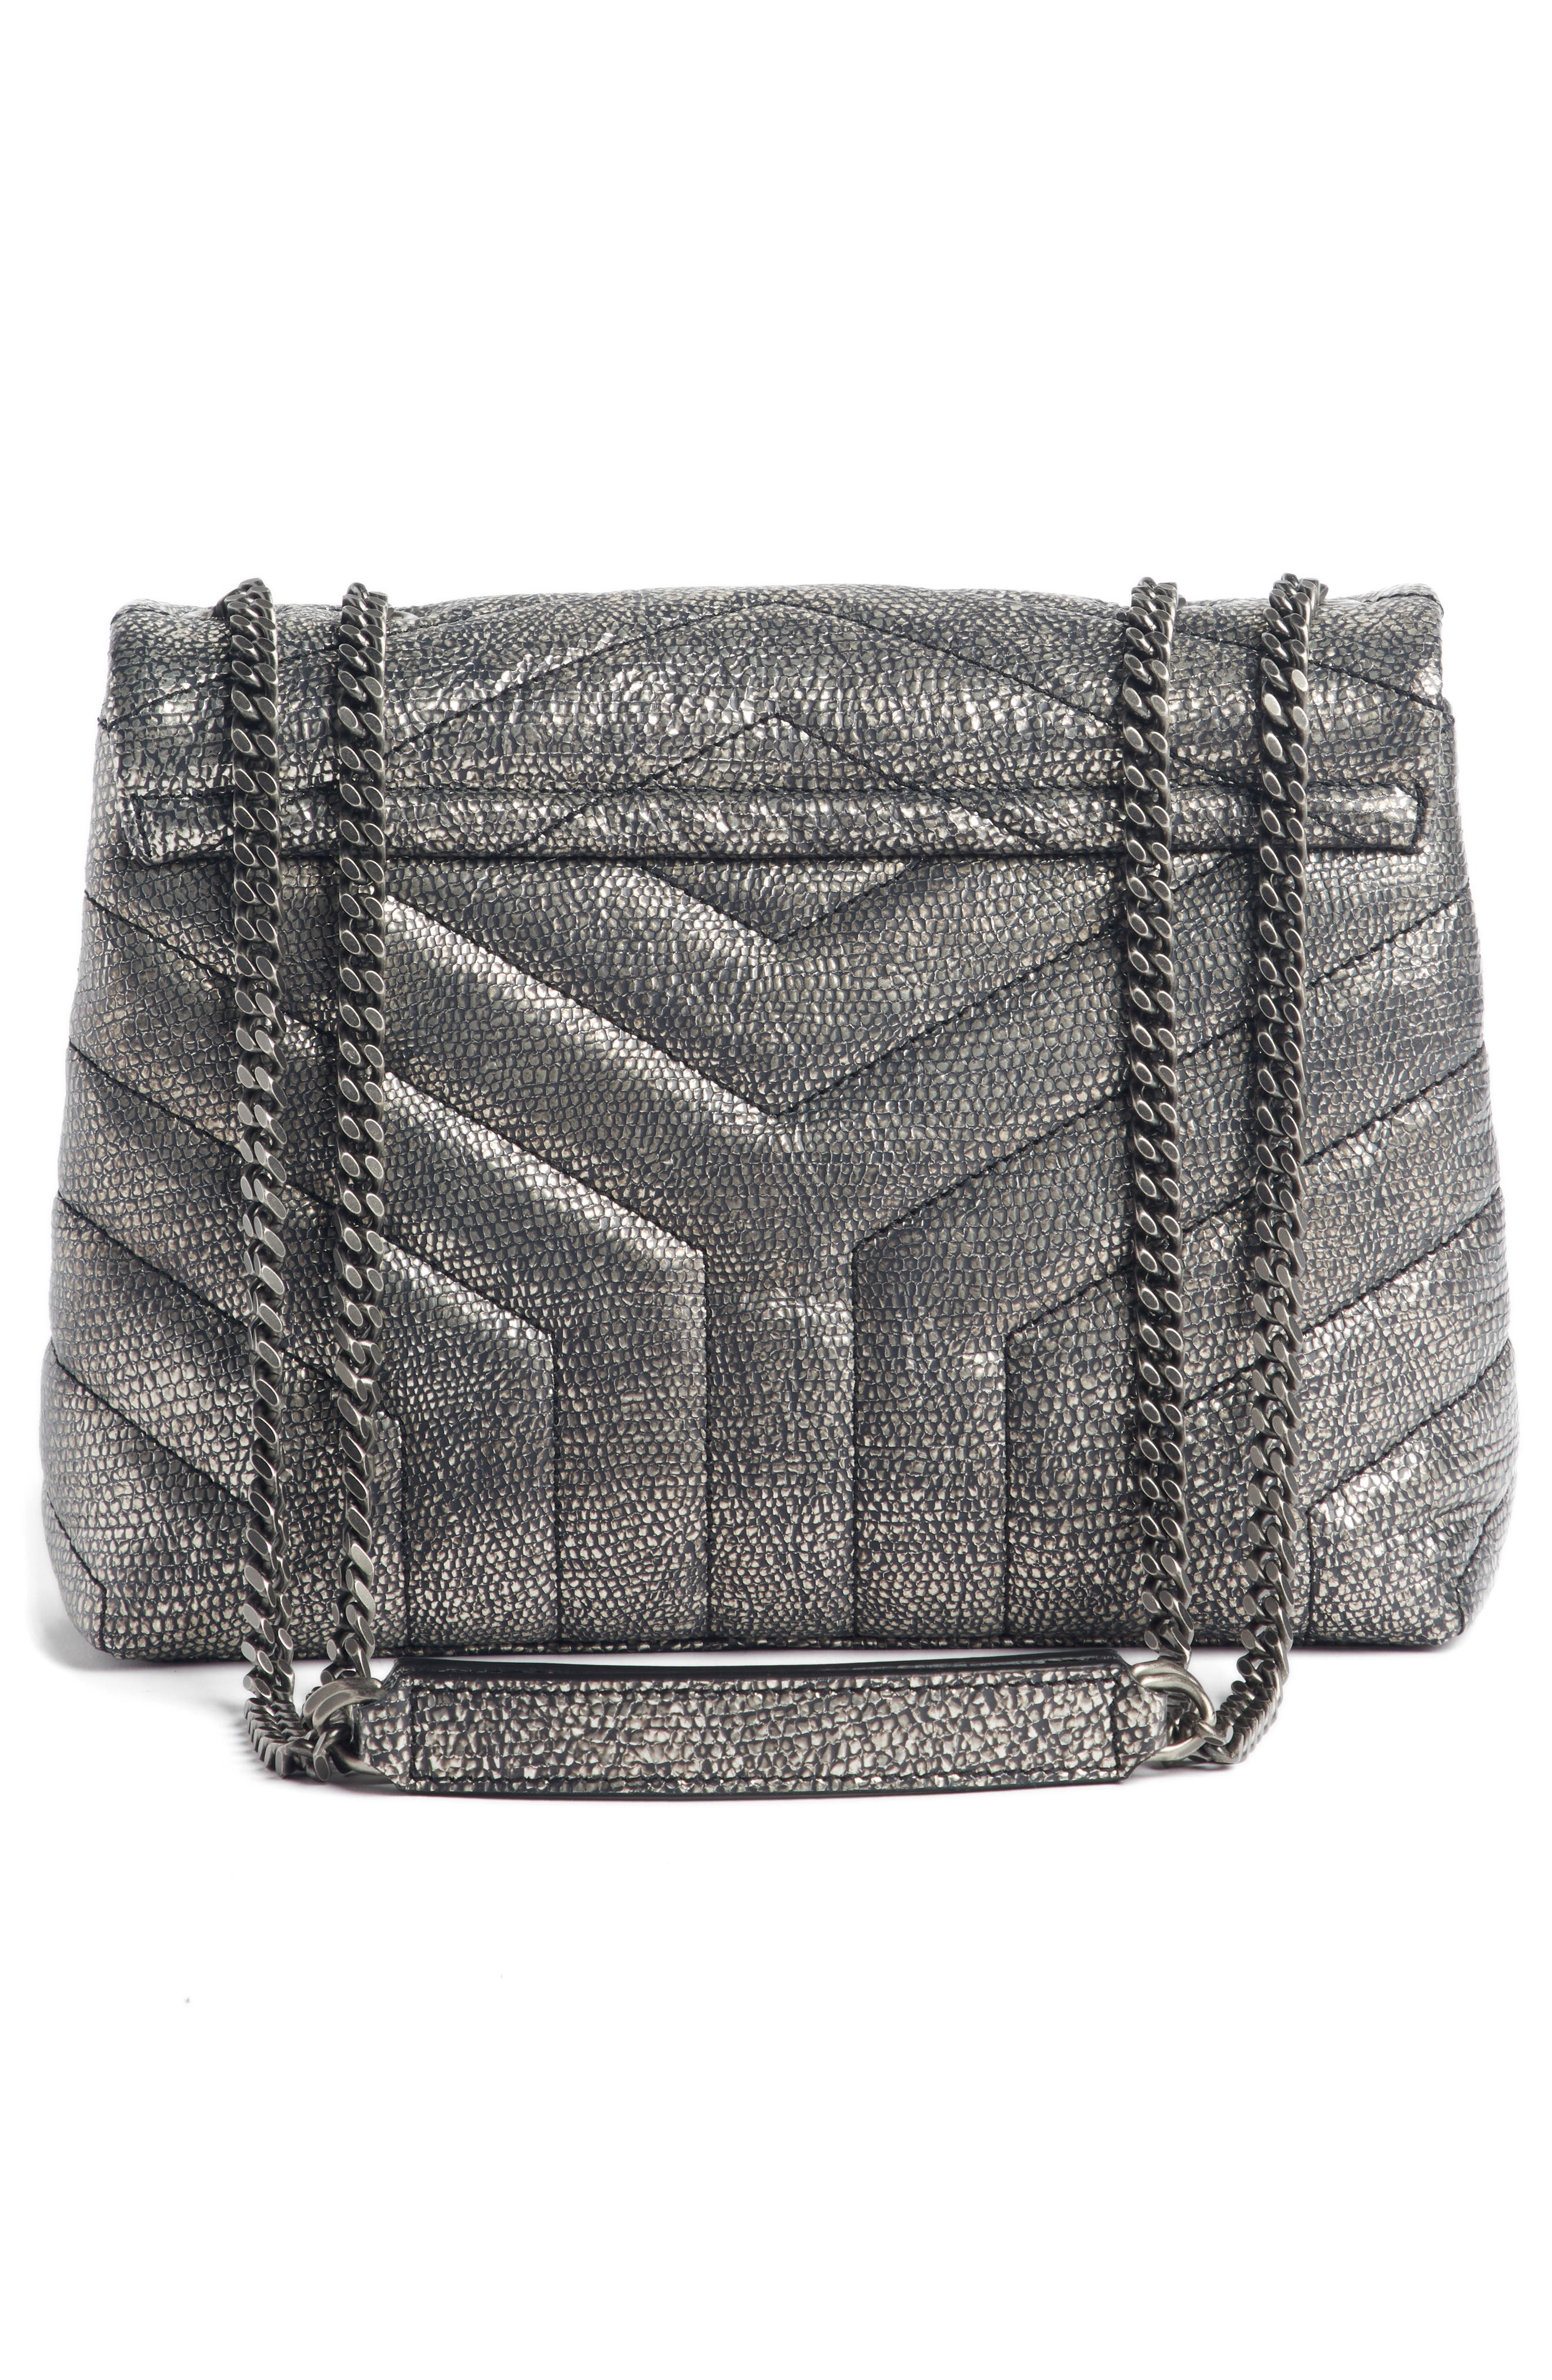 Loulou Small Metallic Leather Shoulder Bag,                             Alternate thumbnail 4, color,                             Graphtie